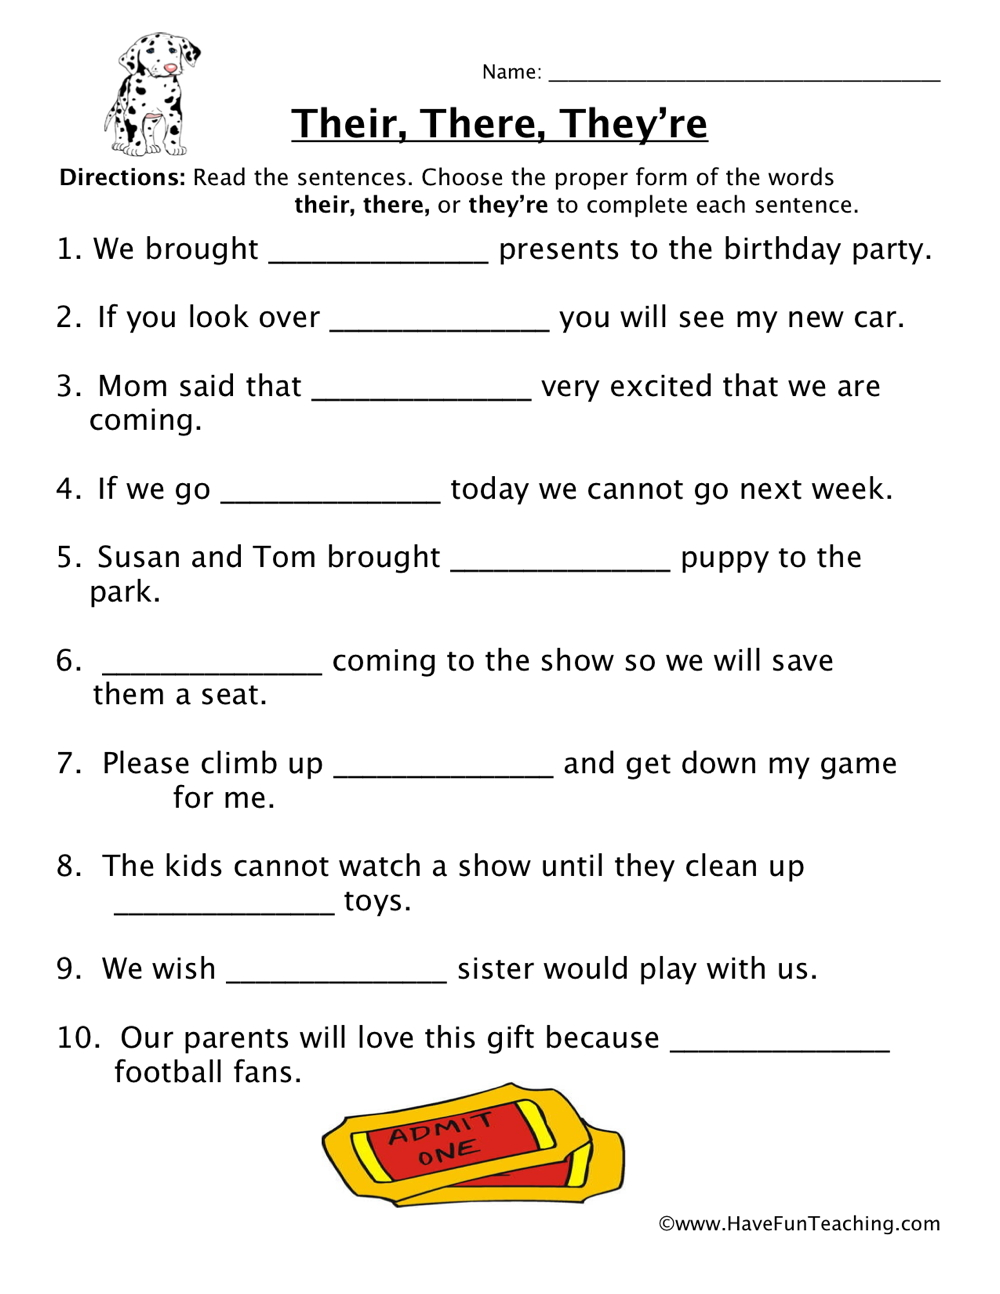 Their There They Re Homophones Worksheet